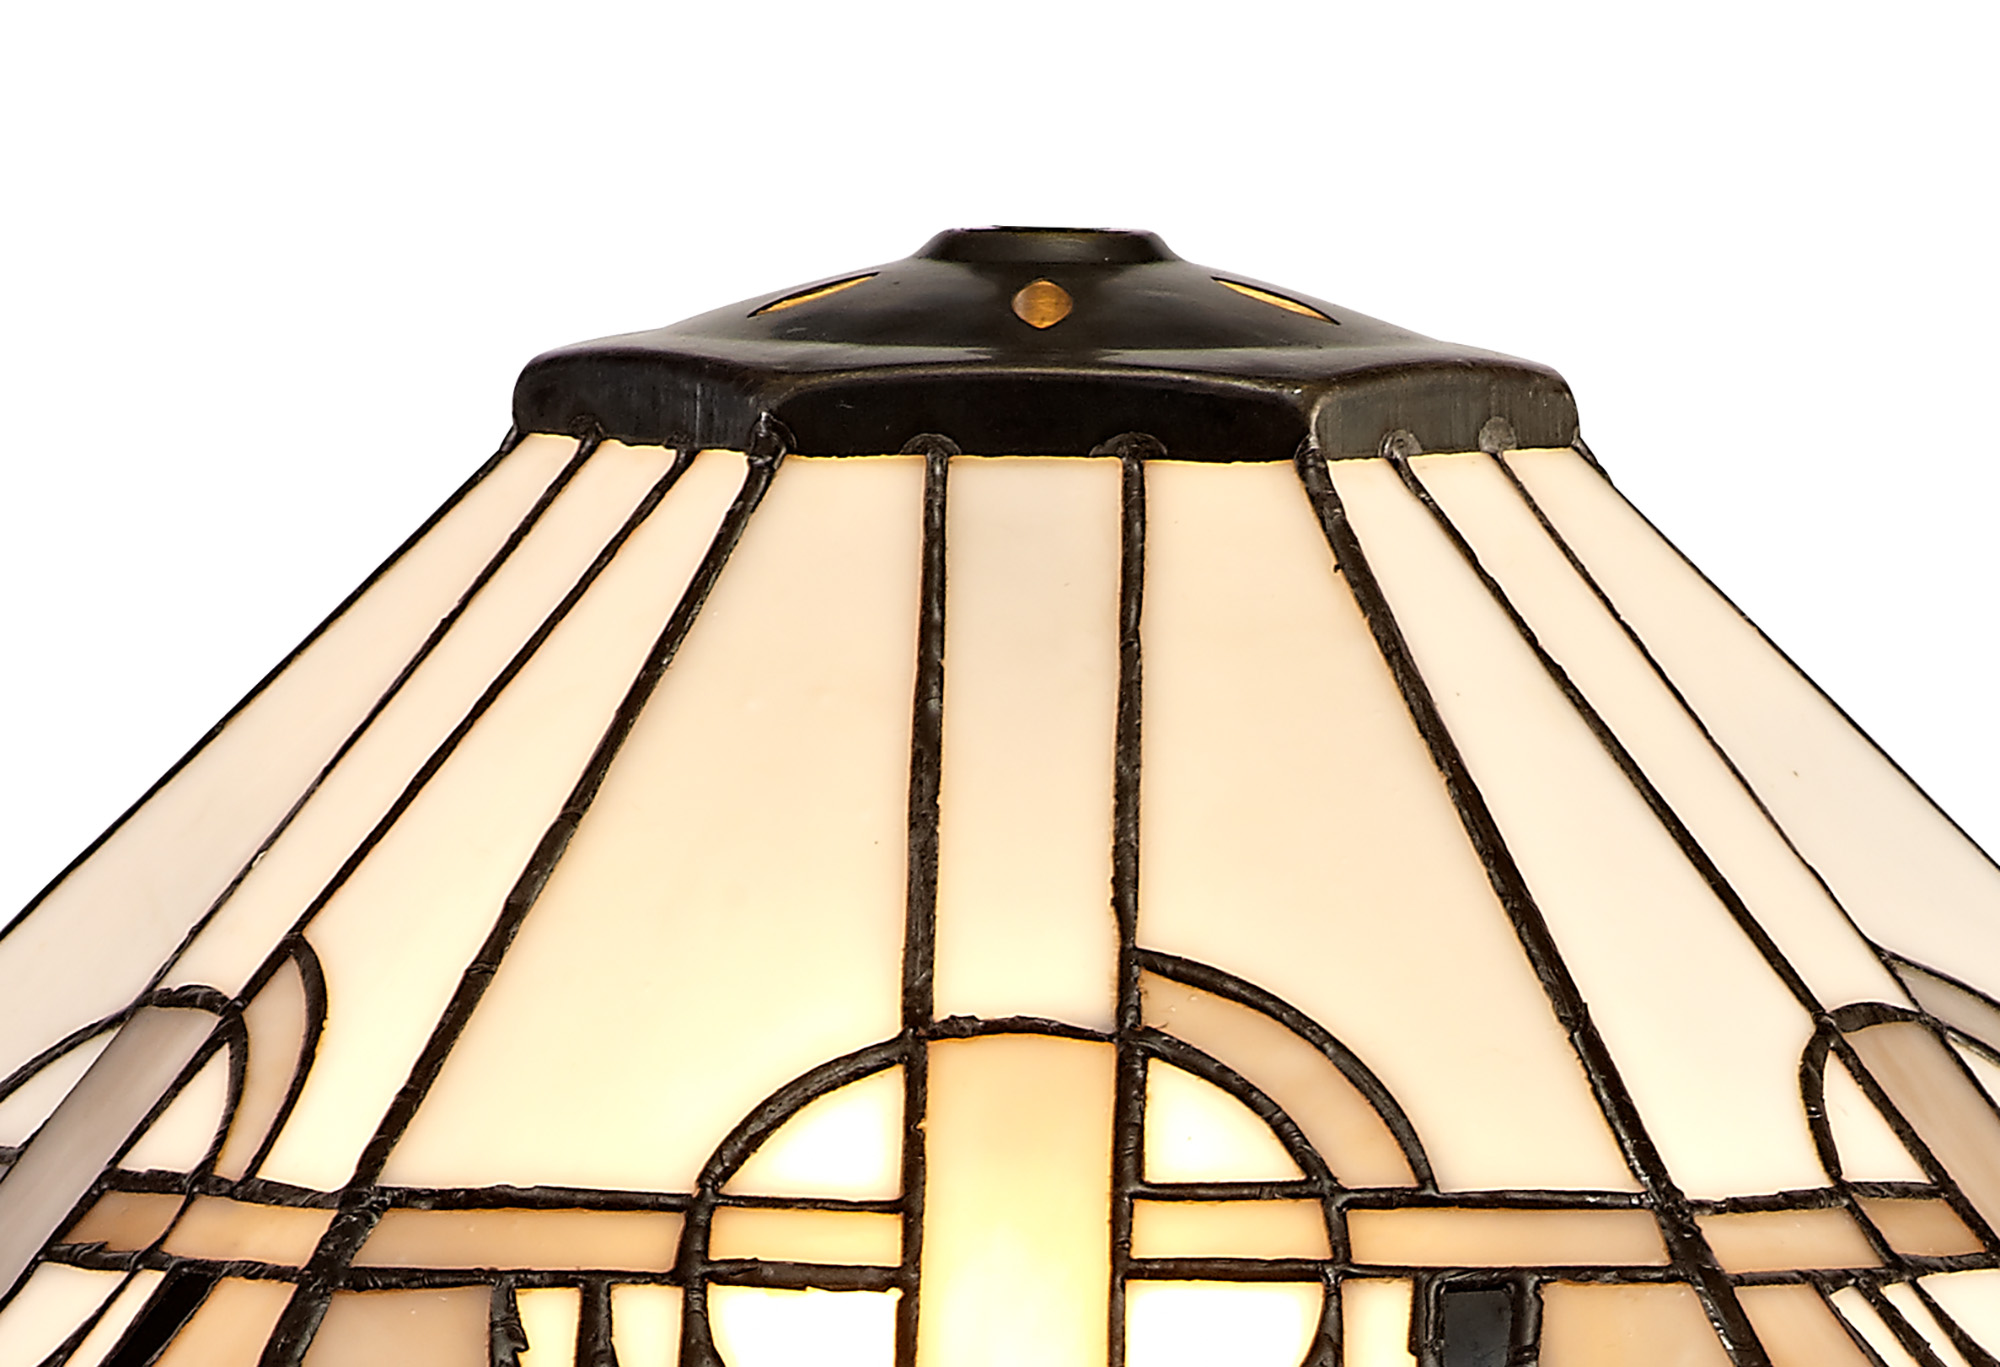 52.5cm Octagonal Table Lamp, 2 x E27, Aged Antique Brass